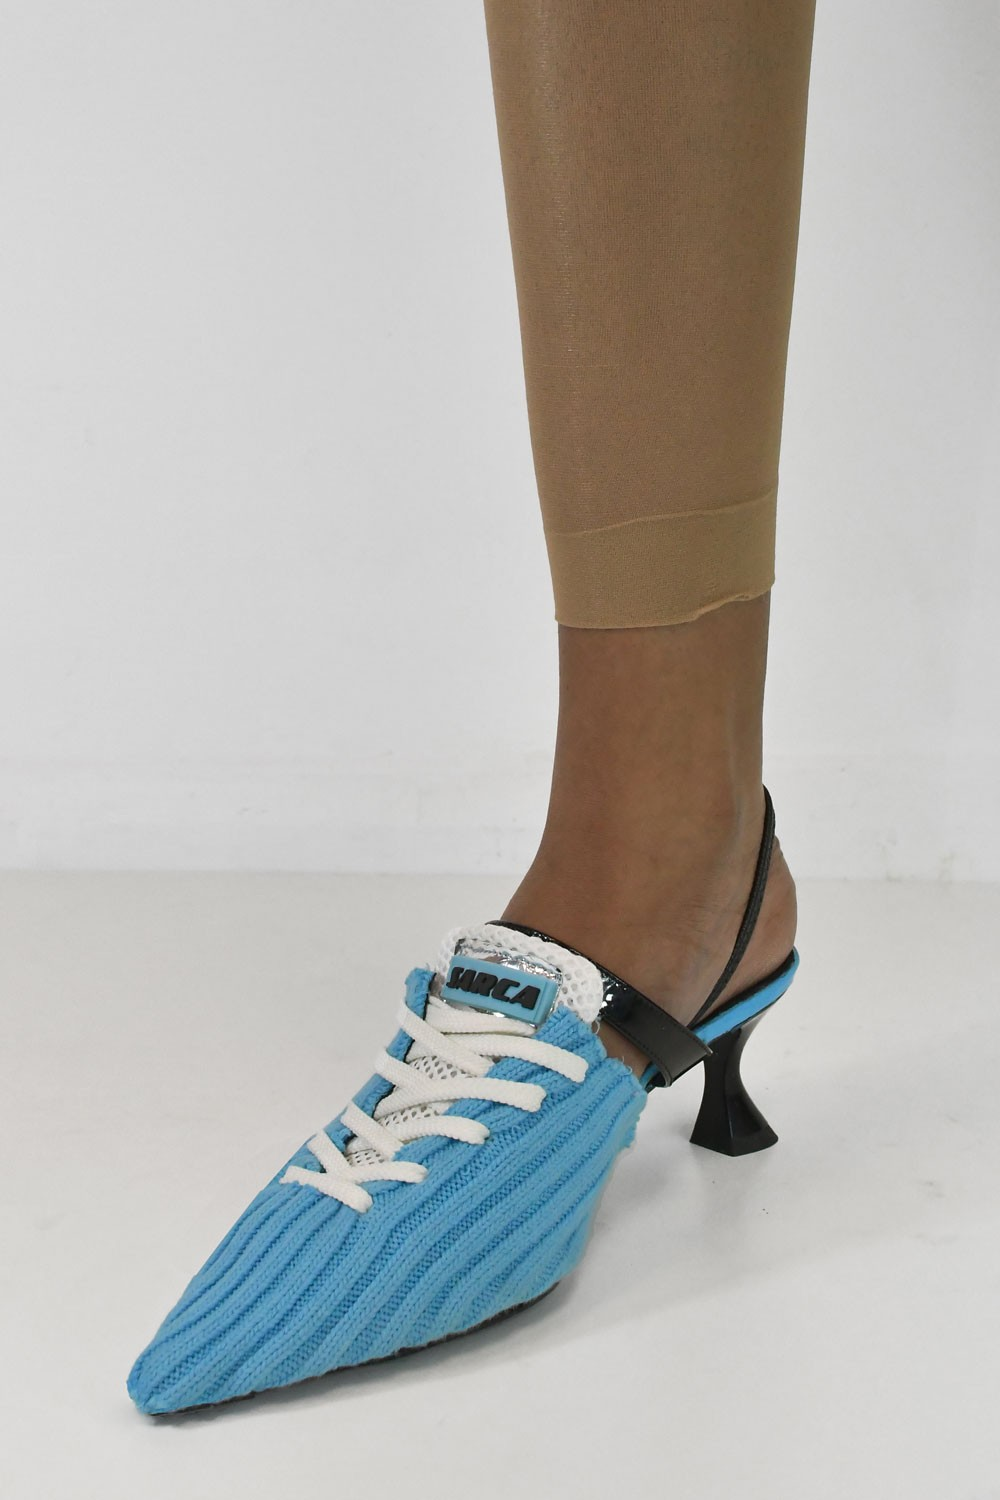 fashion designers changing footwear ancuta sarca justine clenquet nodaleto bed on water dubie